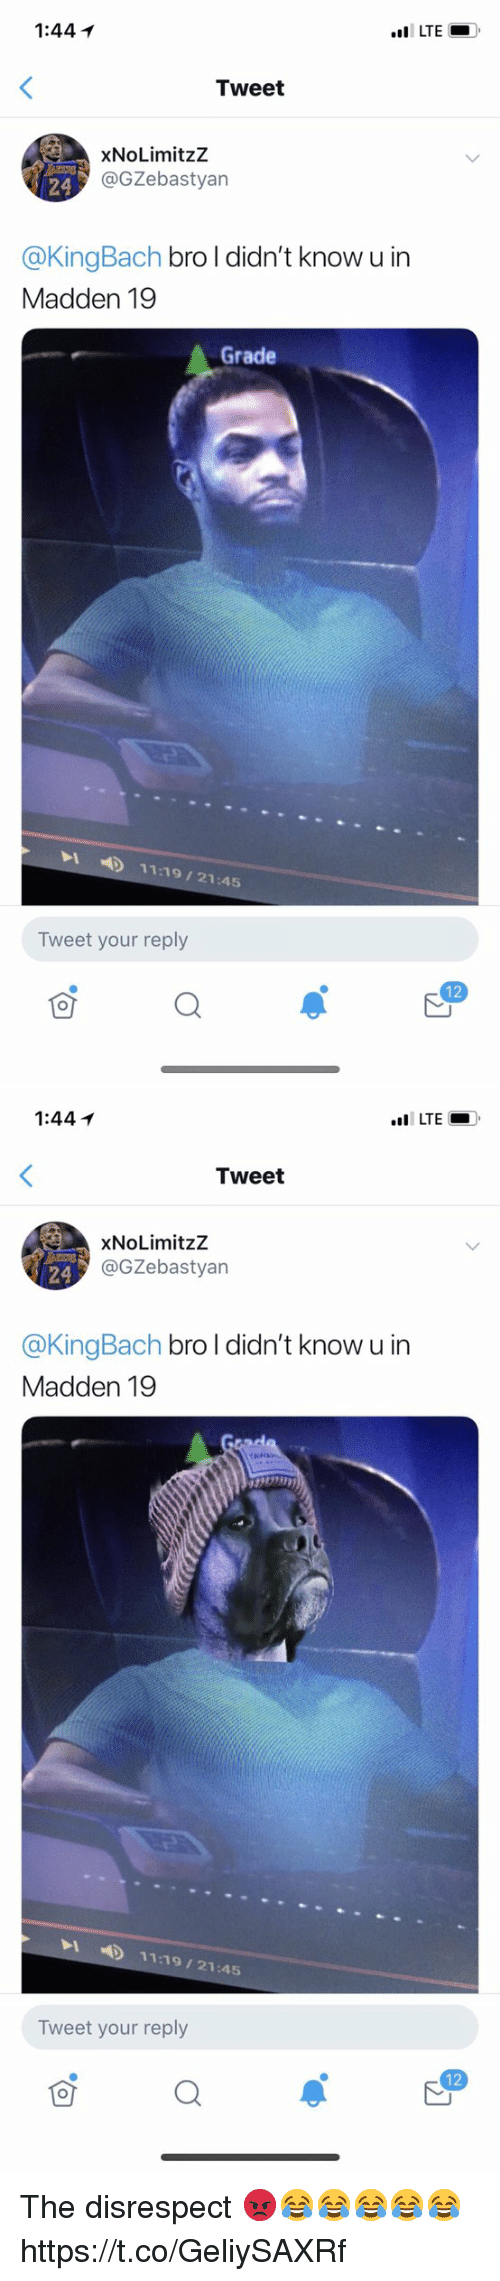 Memes, 🤖, and Lte: 1:44 1  LTE  Tweet  XNoLimitzZ  @GZebastyan  24  @KingBach bro l didn't know u in  Madden 19  Grade  LD 11:19/21:45  Tweet your reply  12   1:44イ  Tweet  XNoLimitzZ  @GZebastyan  24  @KingBach bro l didn't know u in  Madden 19  4)  11:19/21.45  Tweet your reply  12 The disrespect 😡😂😂😂😂😂 https://t.co/GeliySAXRf